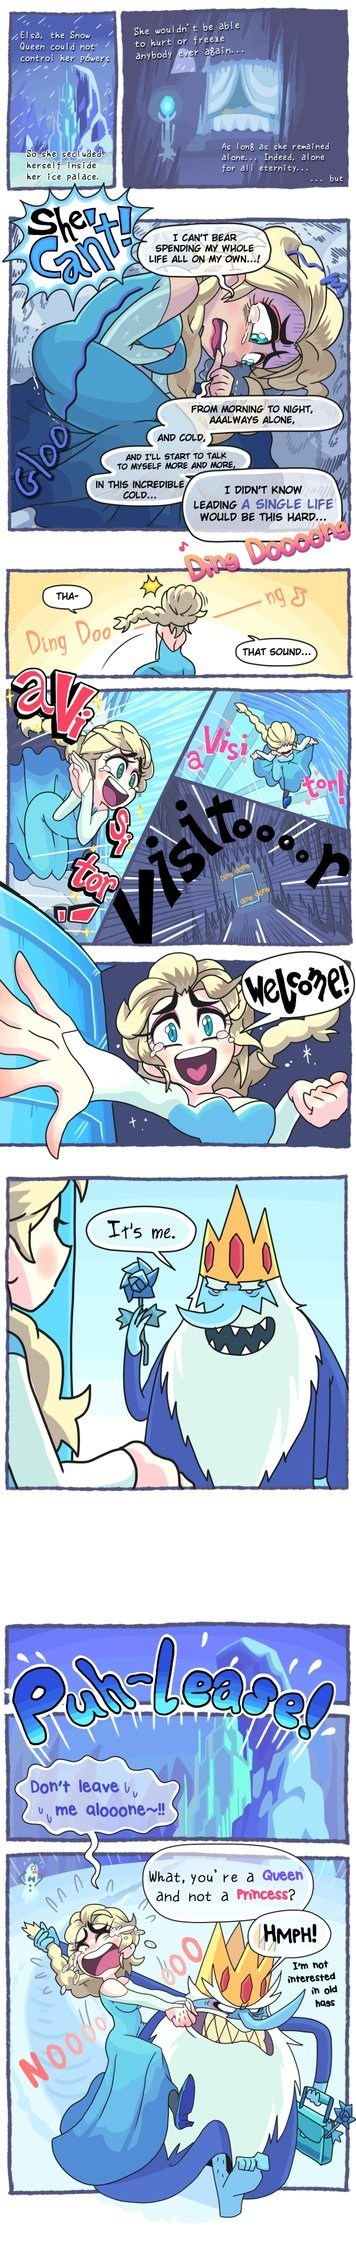 Do You Want to Wed an Ice King?